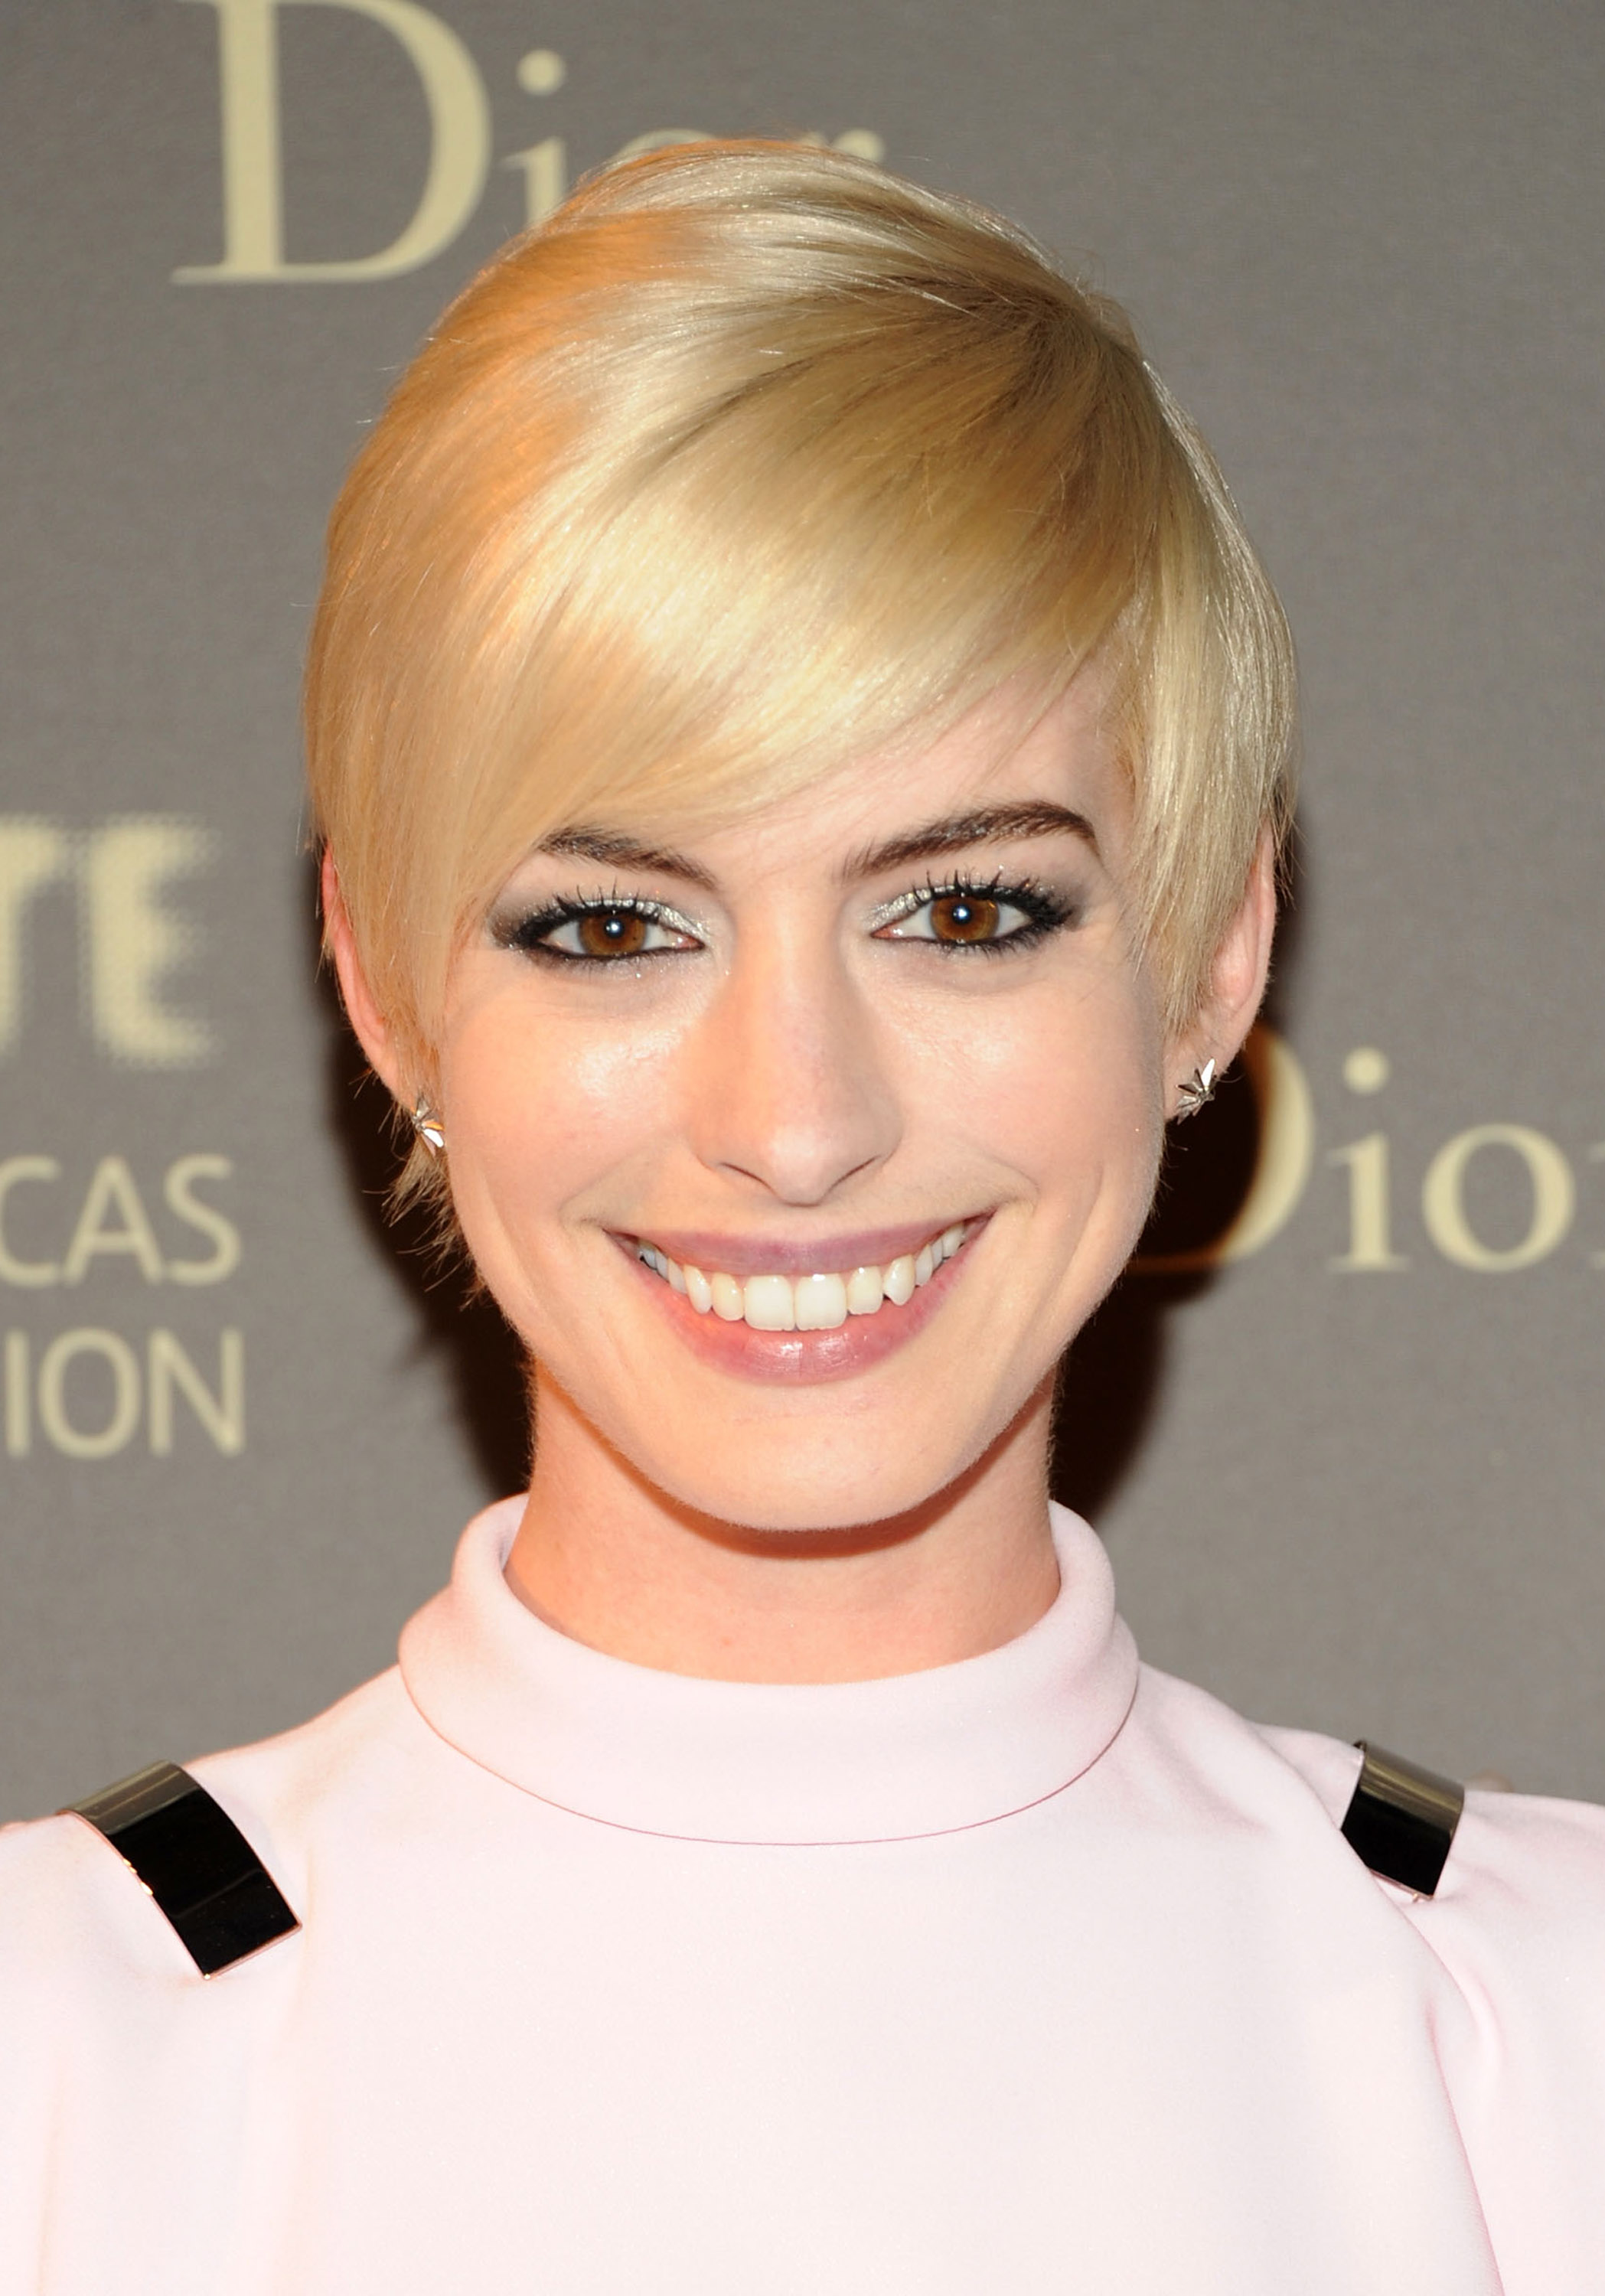 Short hairstyles for women – 35 advice for choosing ...